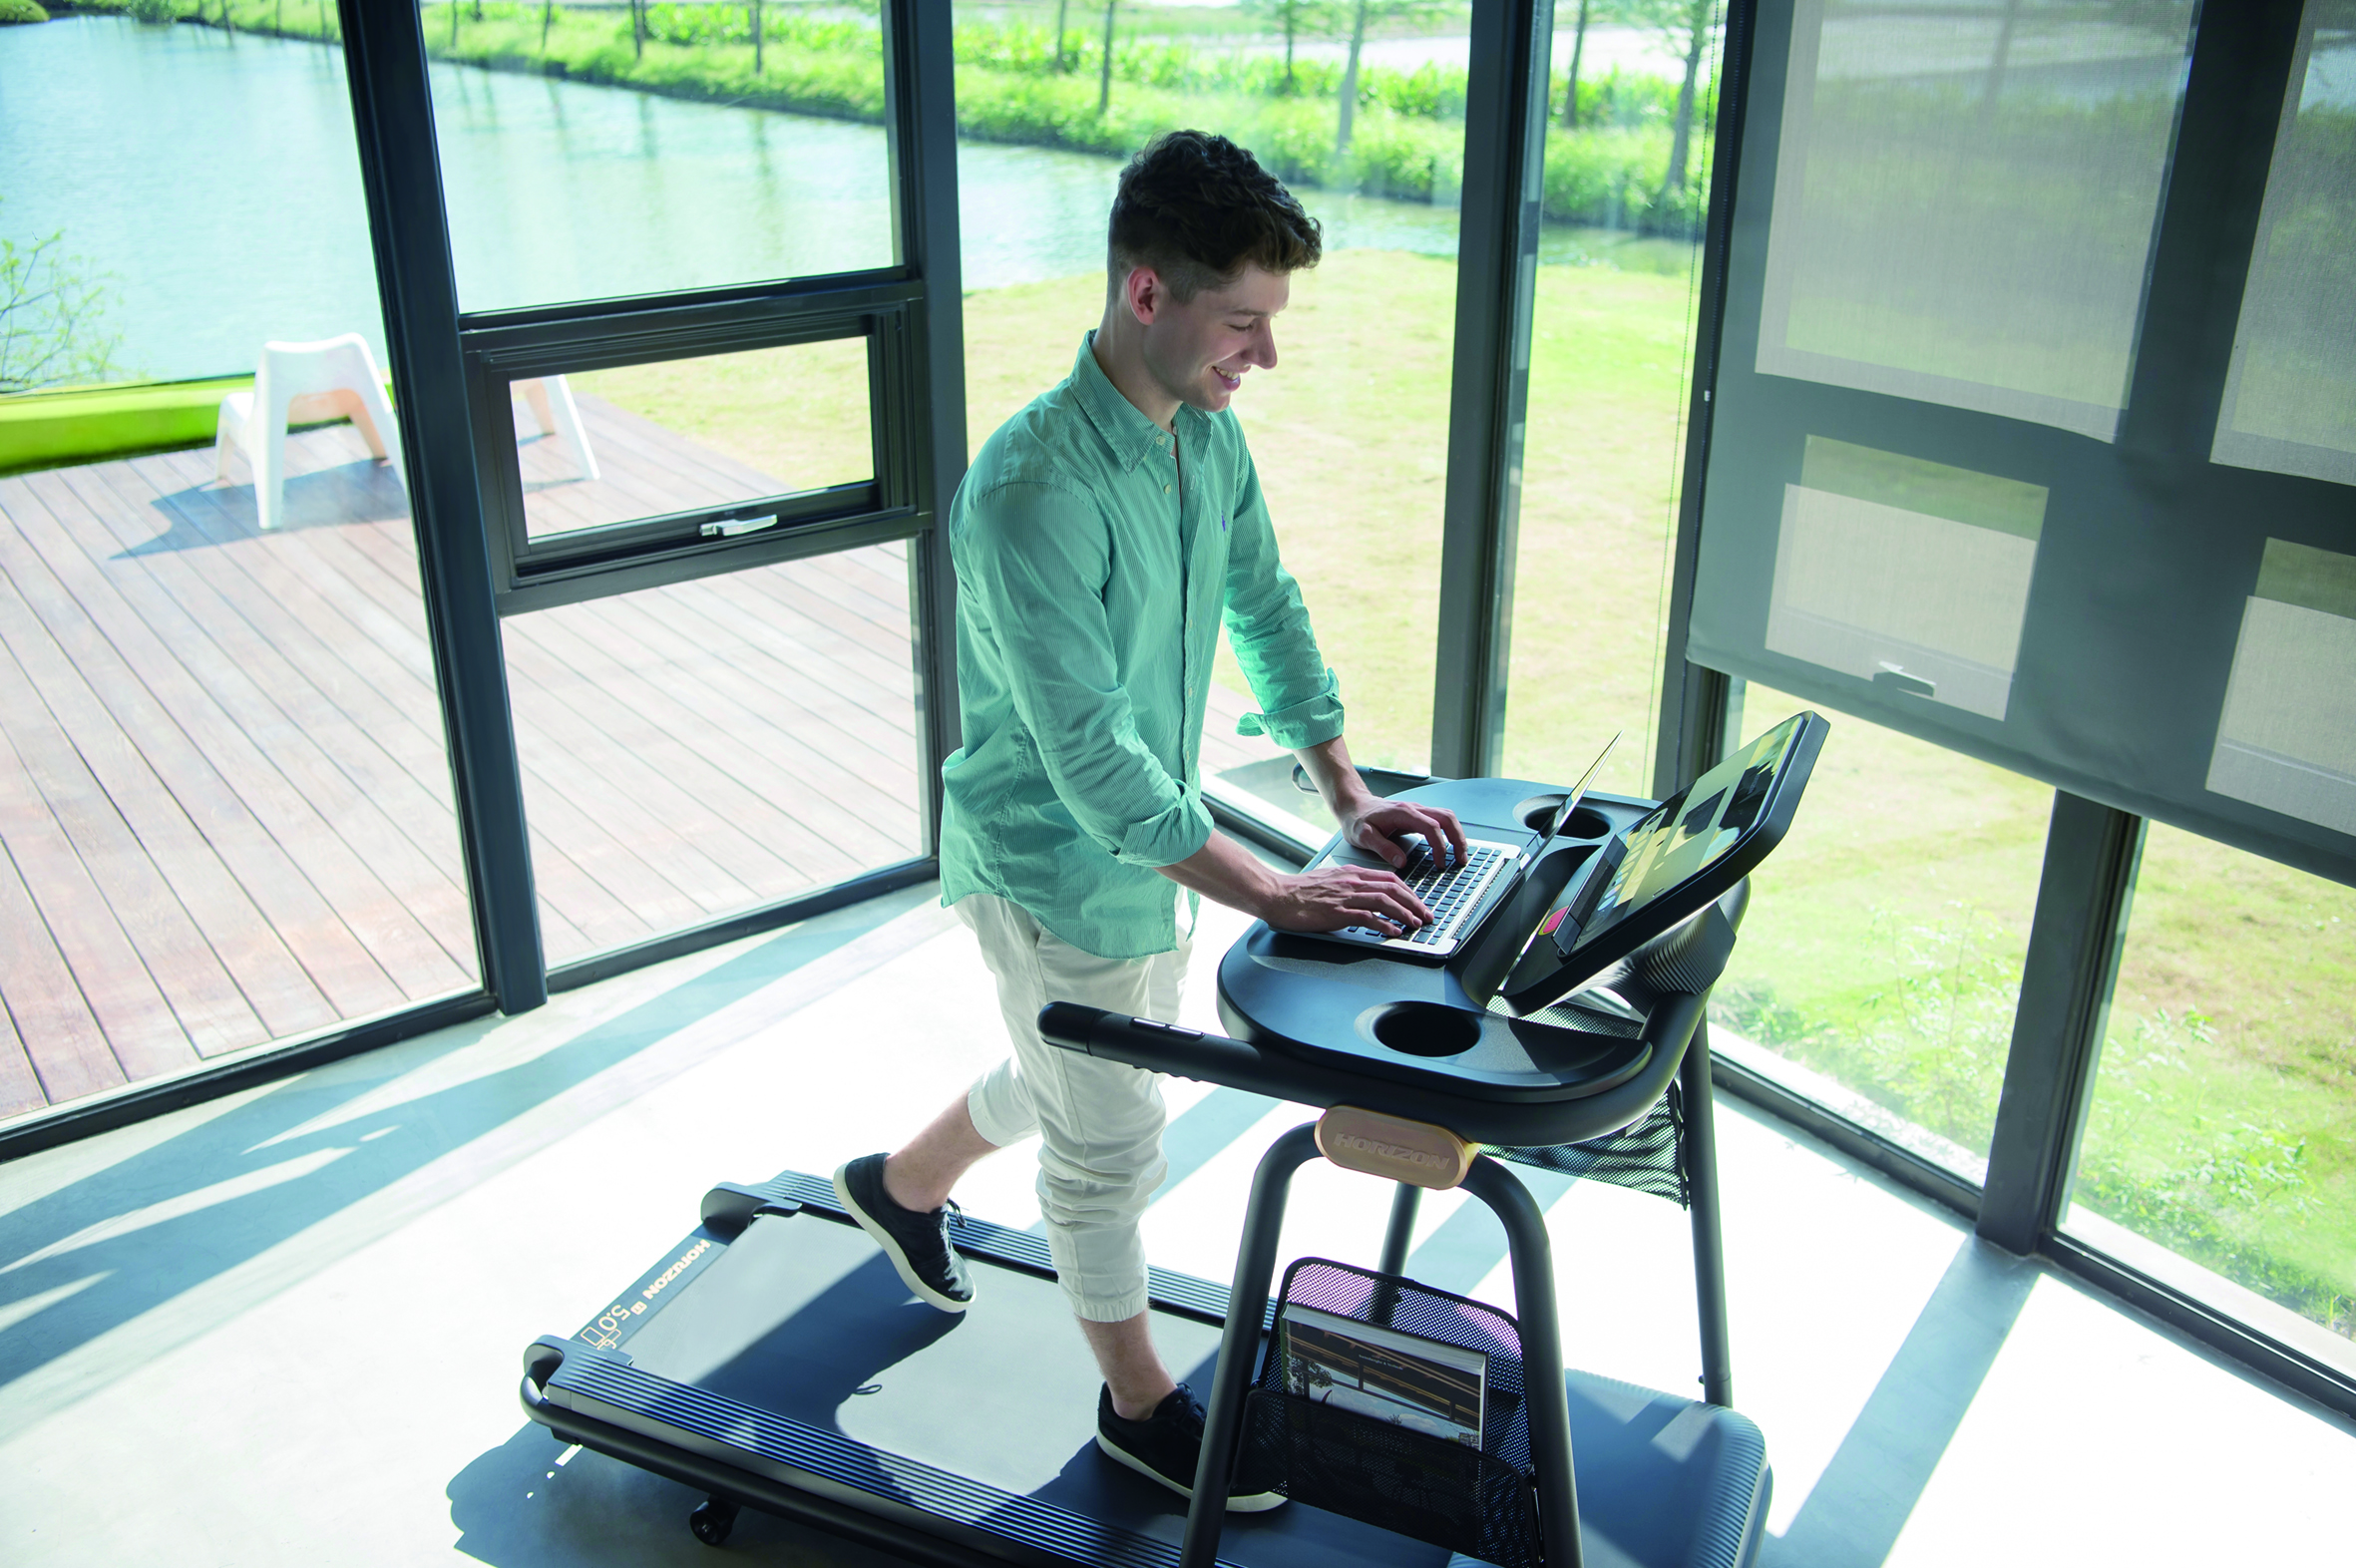 HZ17_CITTA LIFESTYLE_male_treadmill_using laptop_high angle